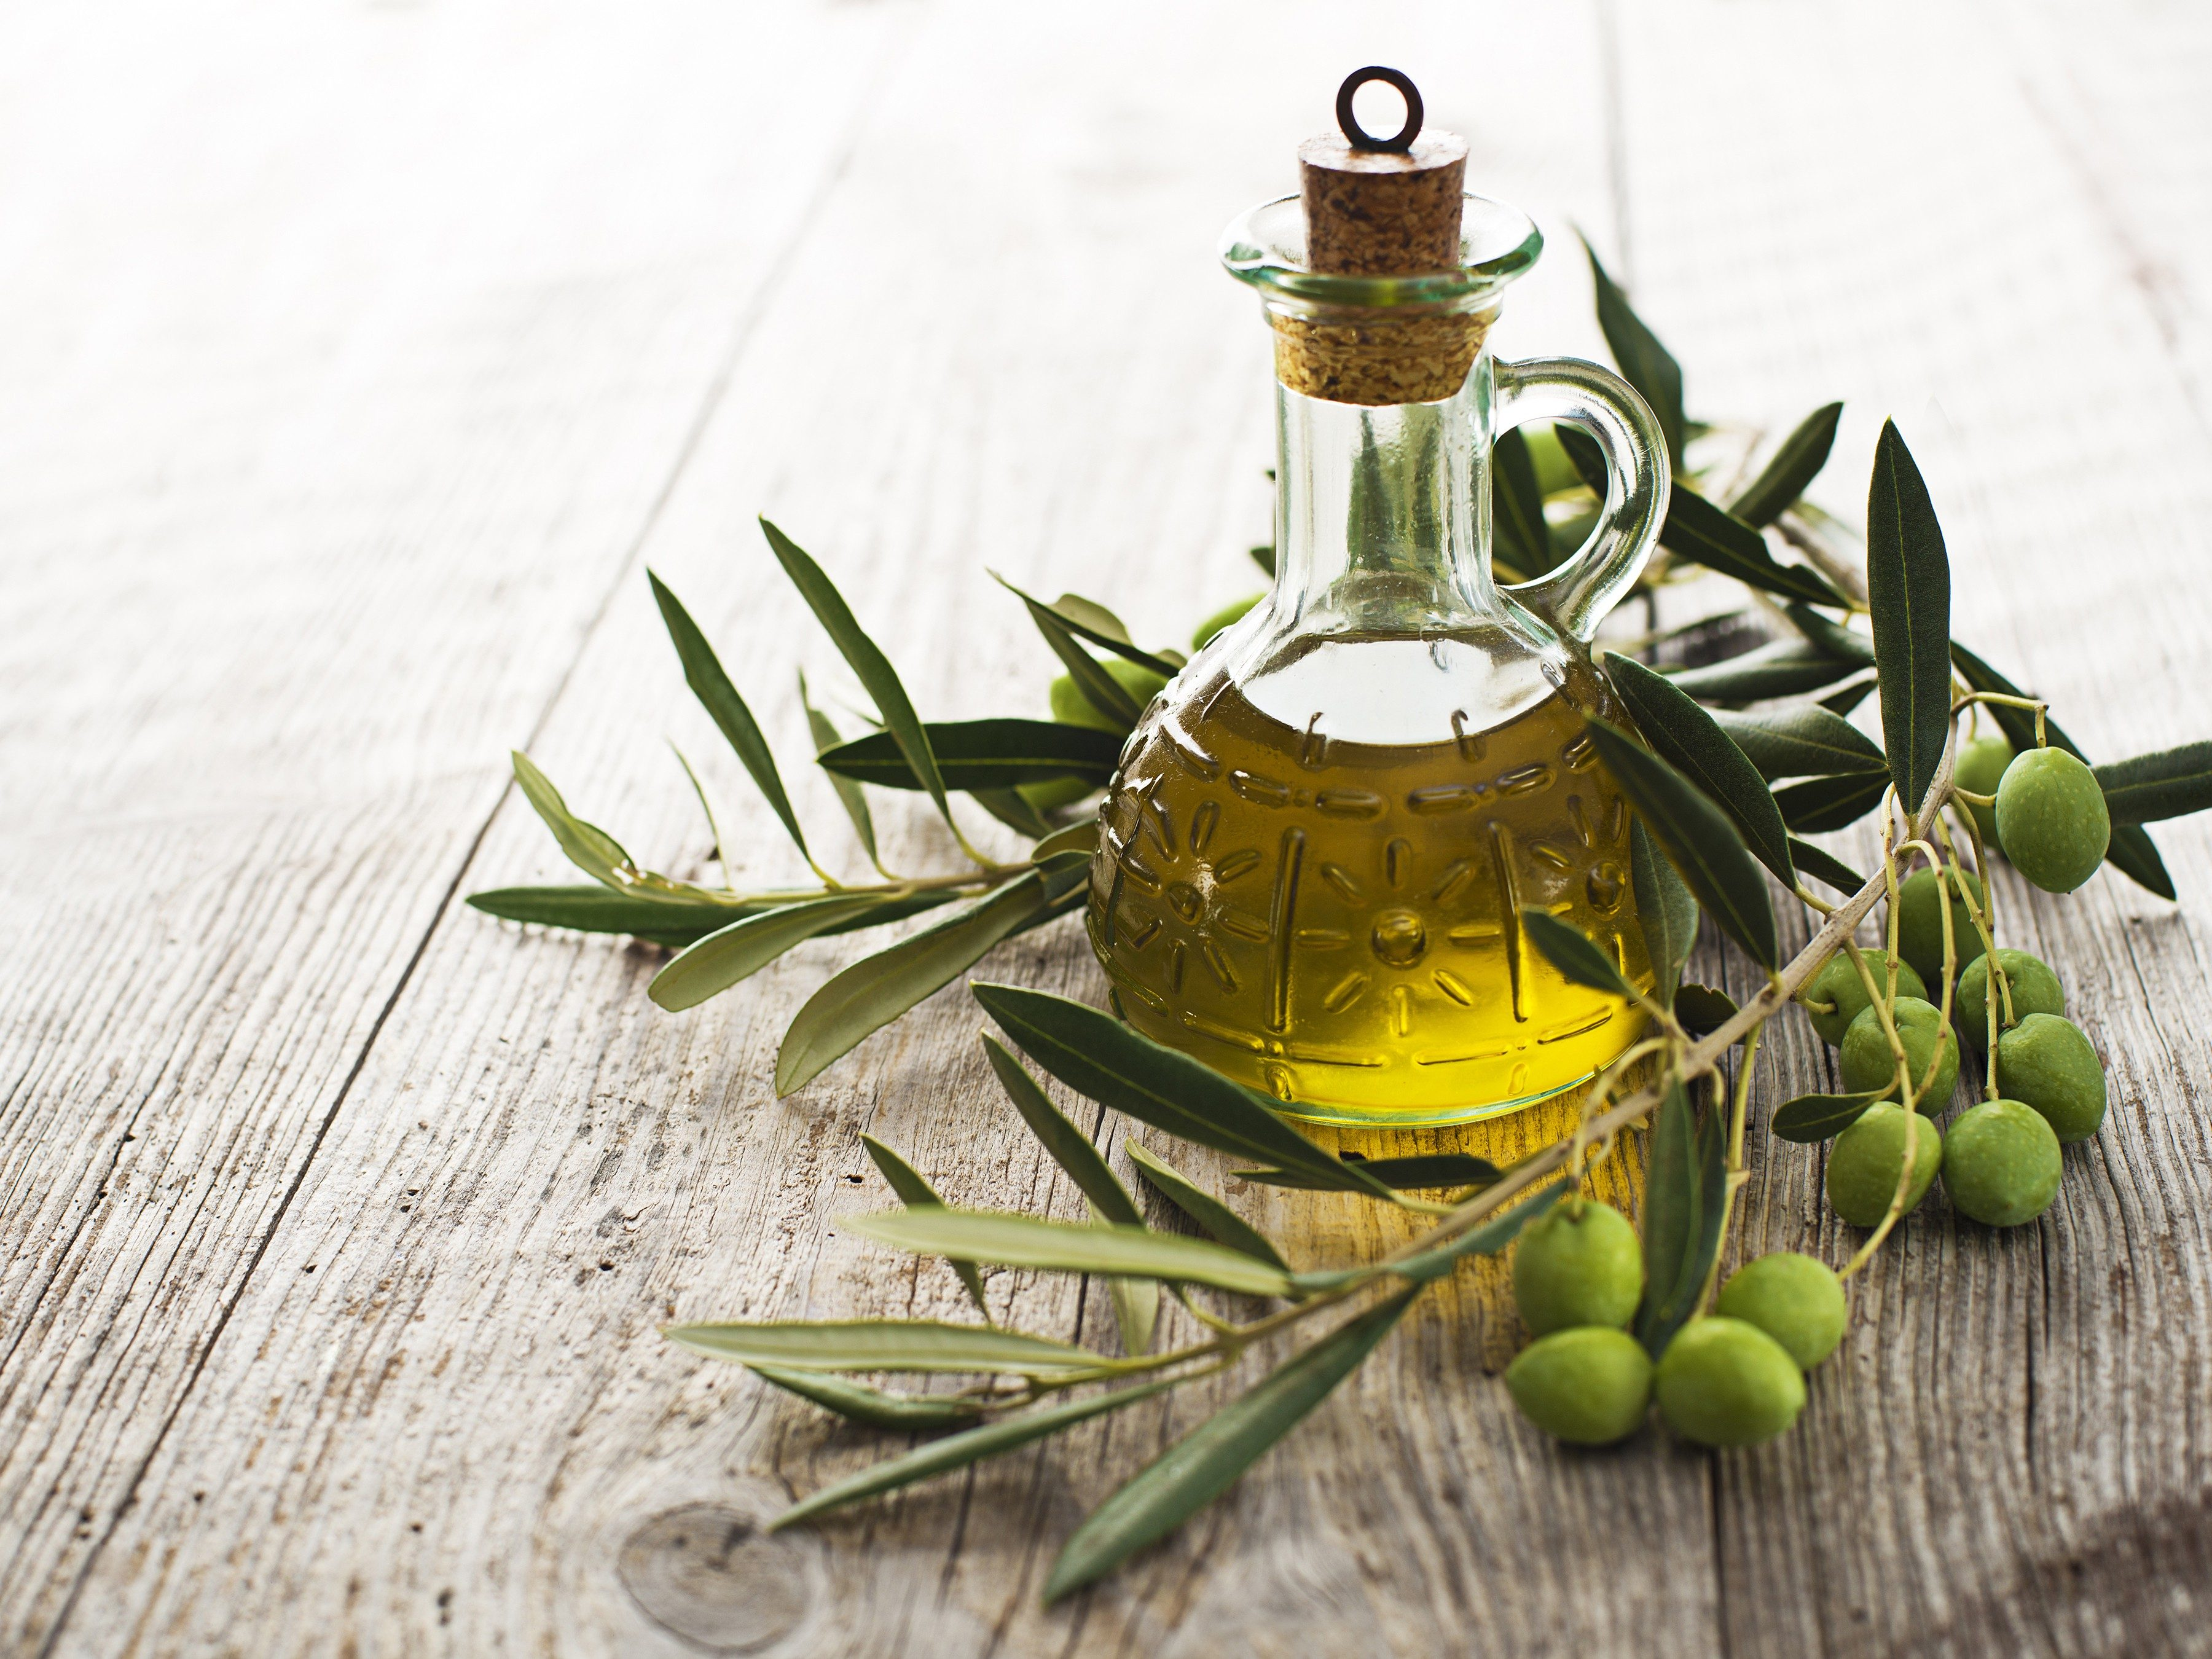 7. Go Natural with Olive Oil